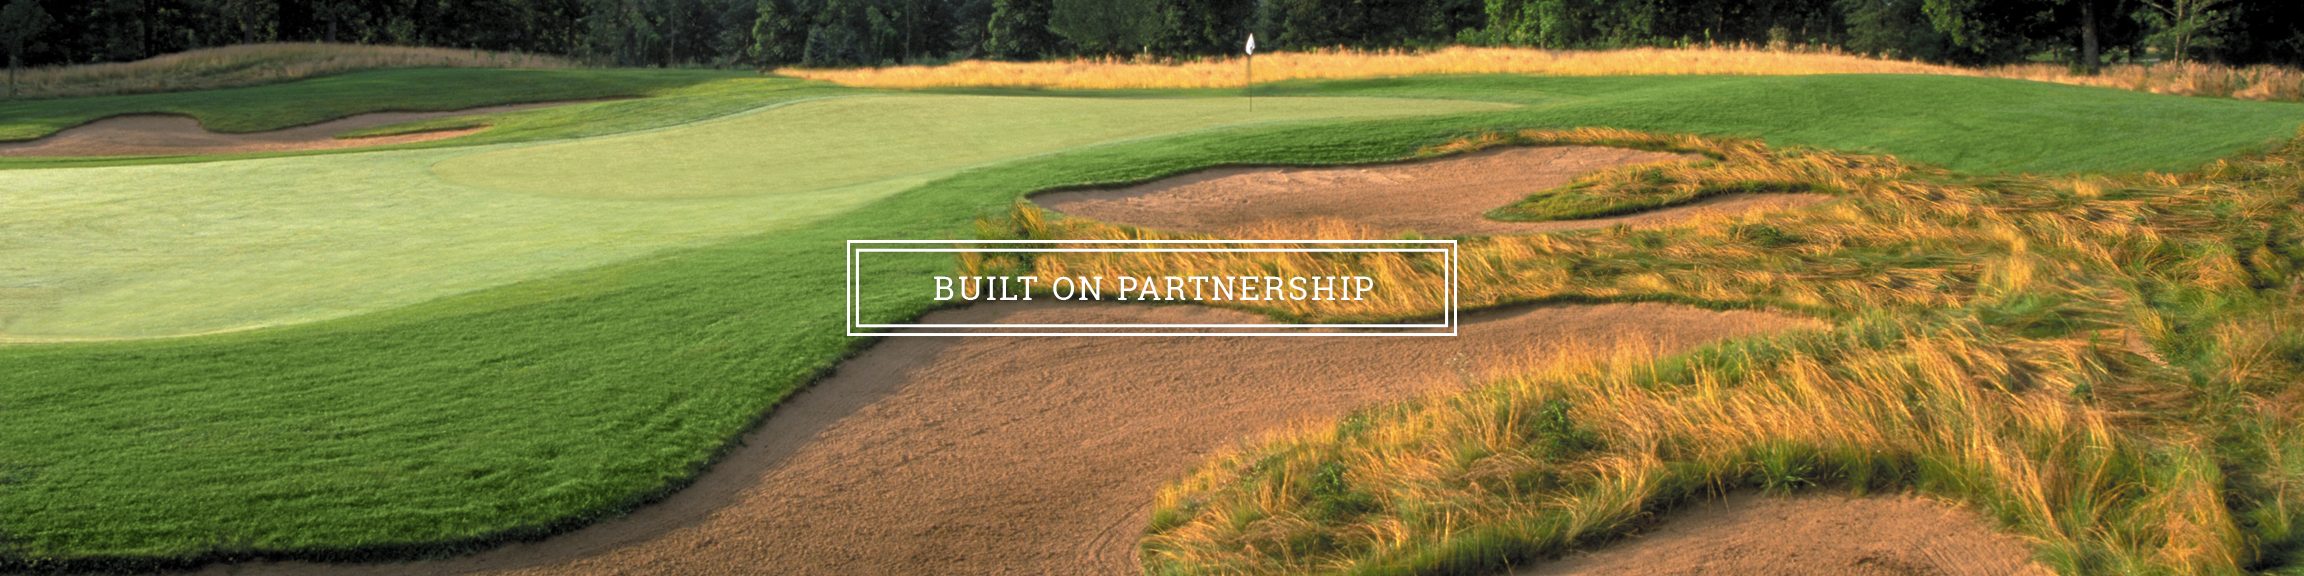 Contact Us | Duininck Golf | Golf Course Renovation, Construction, Irrigation, Better Billy Bunker Method Installer, Architect